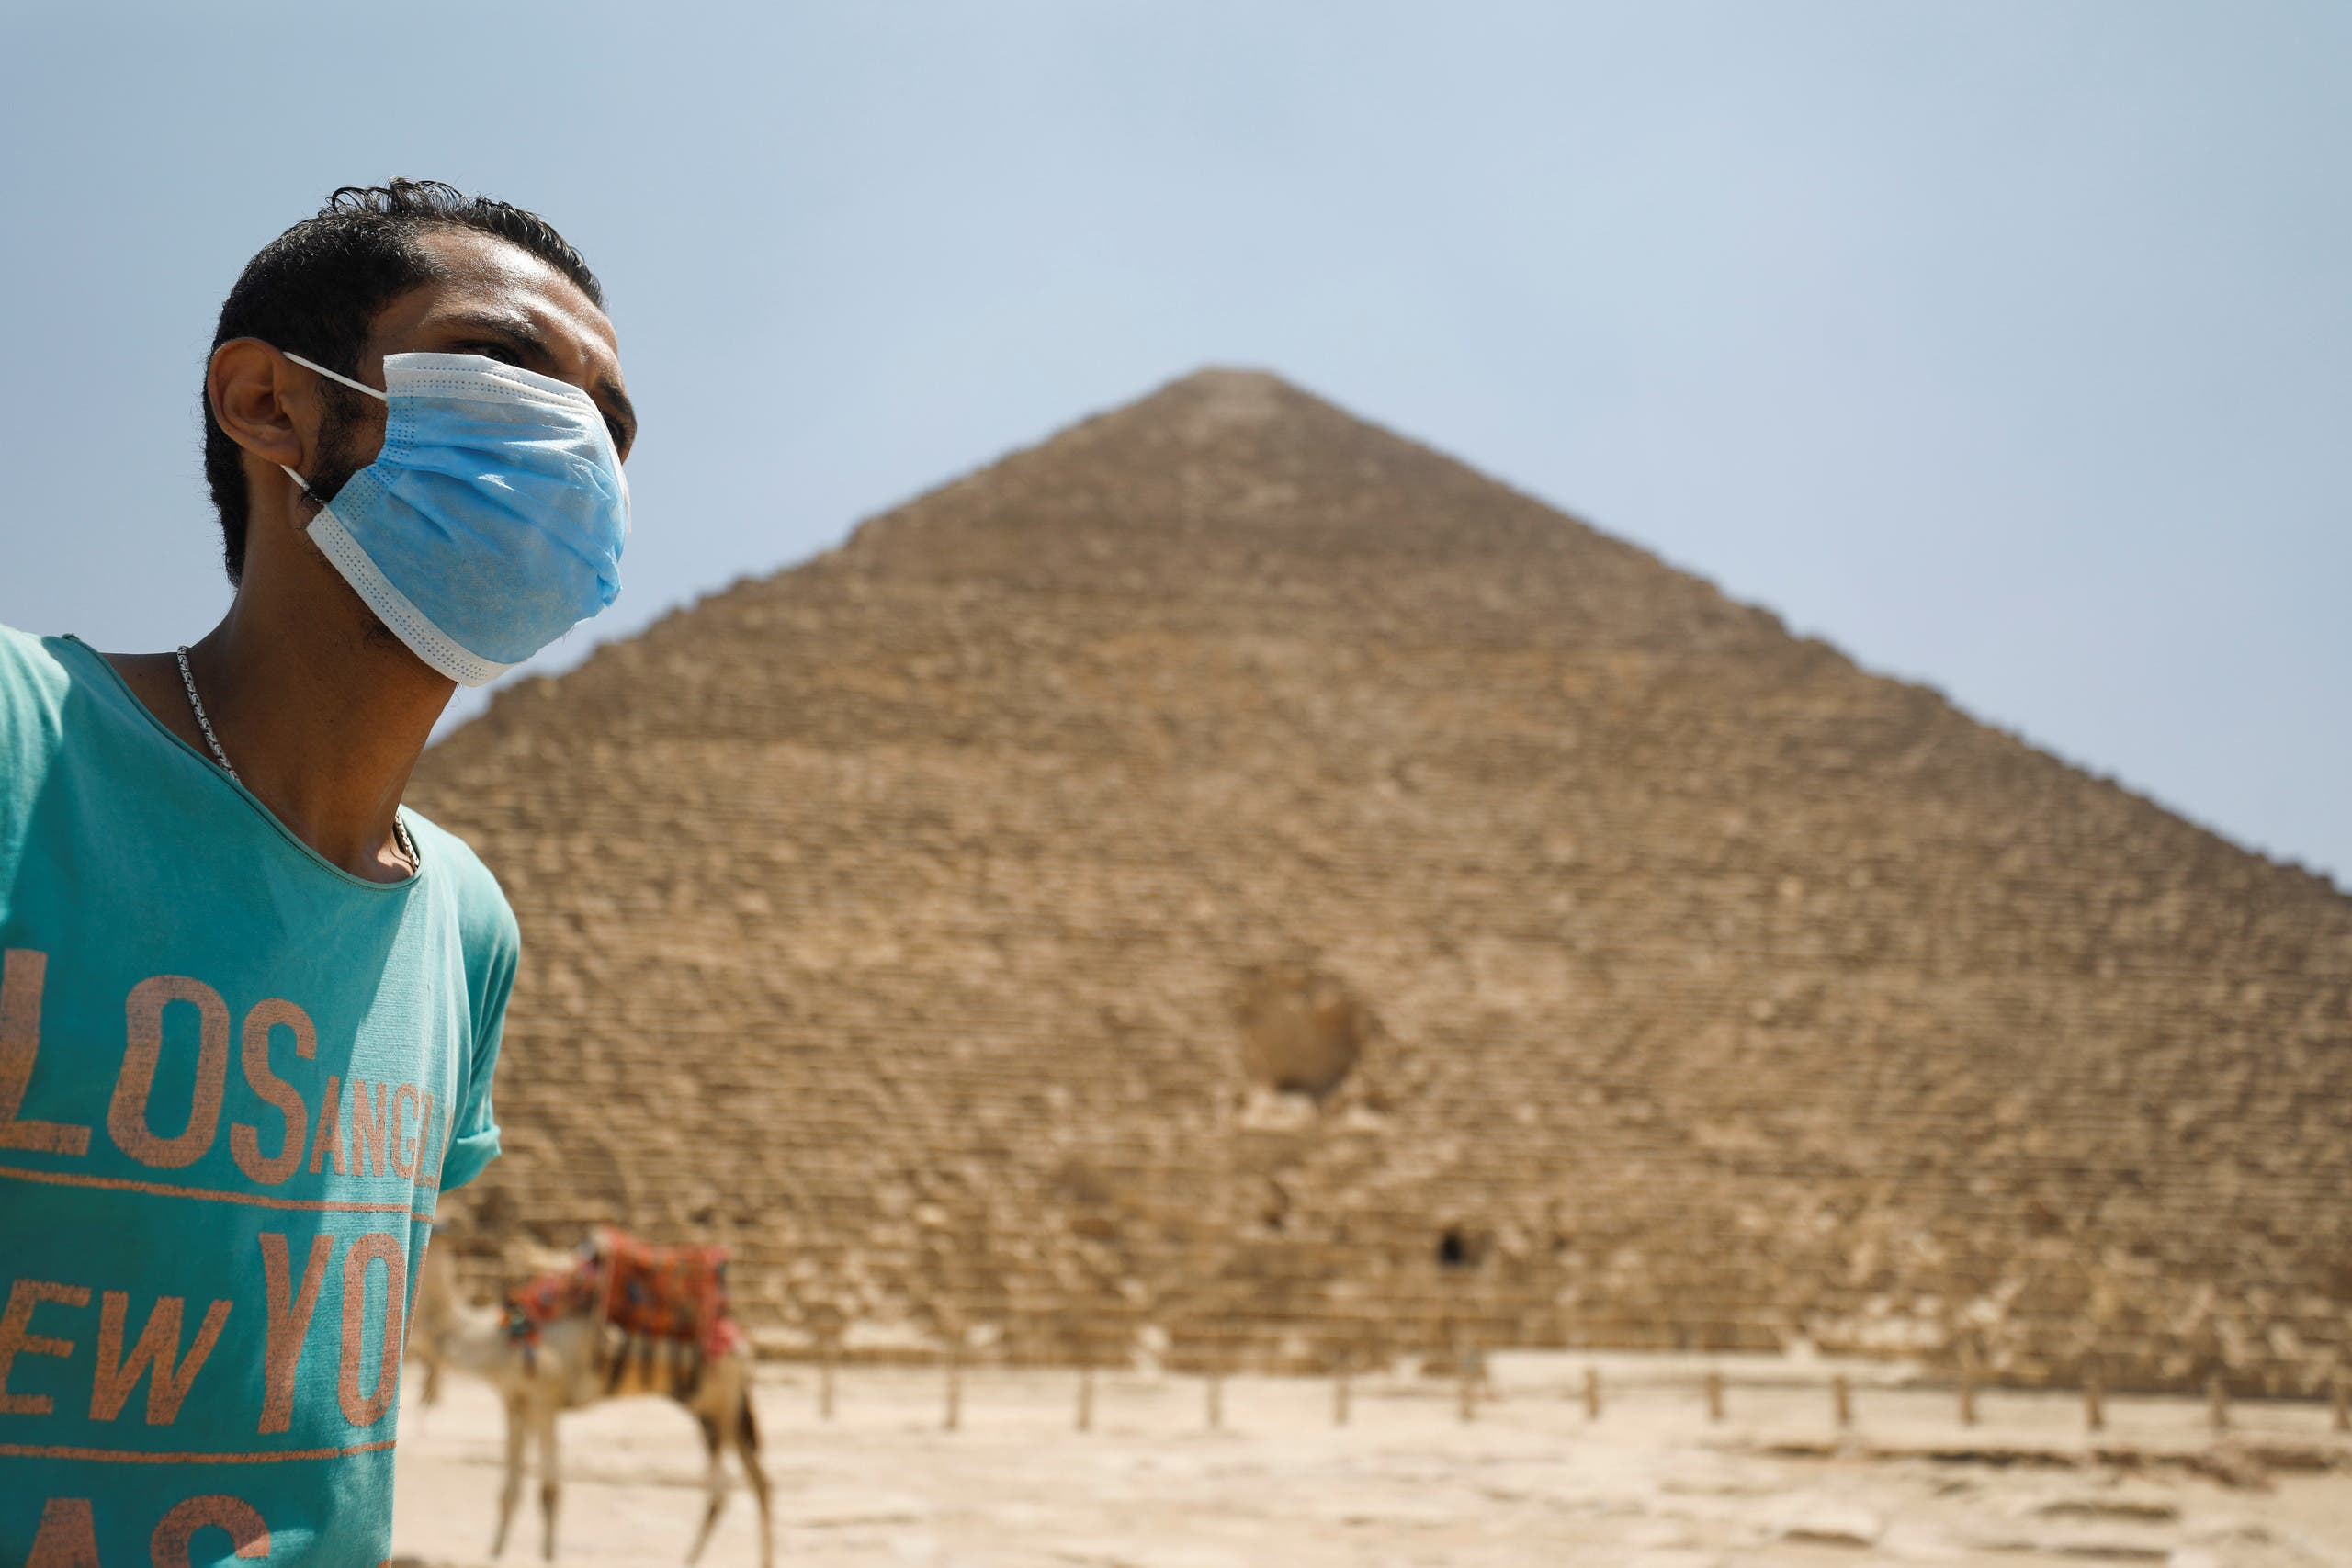 A man wearing a face mask is seen in front of the Great Pyramids of Giza after reopening for tourist visits, following the outbreak of the coronavirus disease (COVID-19), in Cairo, Egypt July 1, 2020. (Reuters)